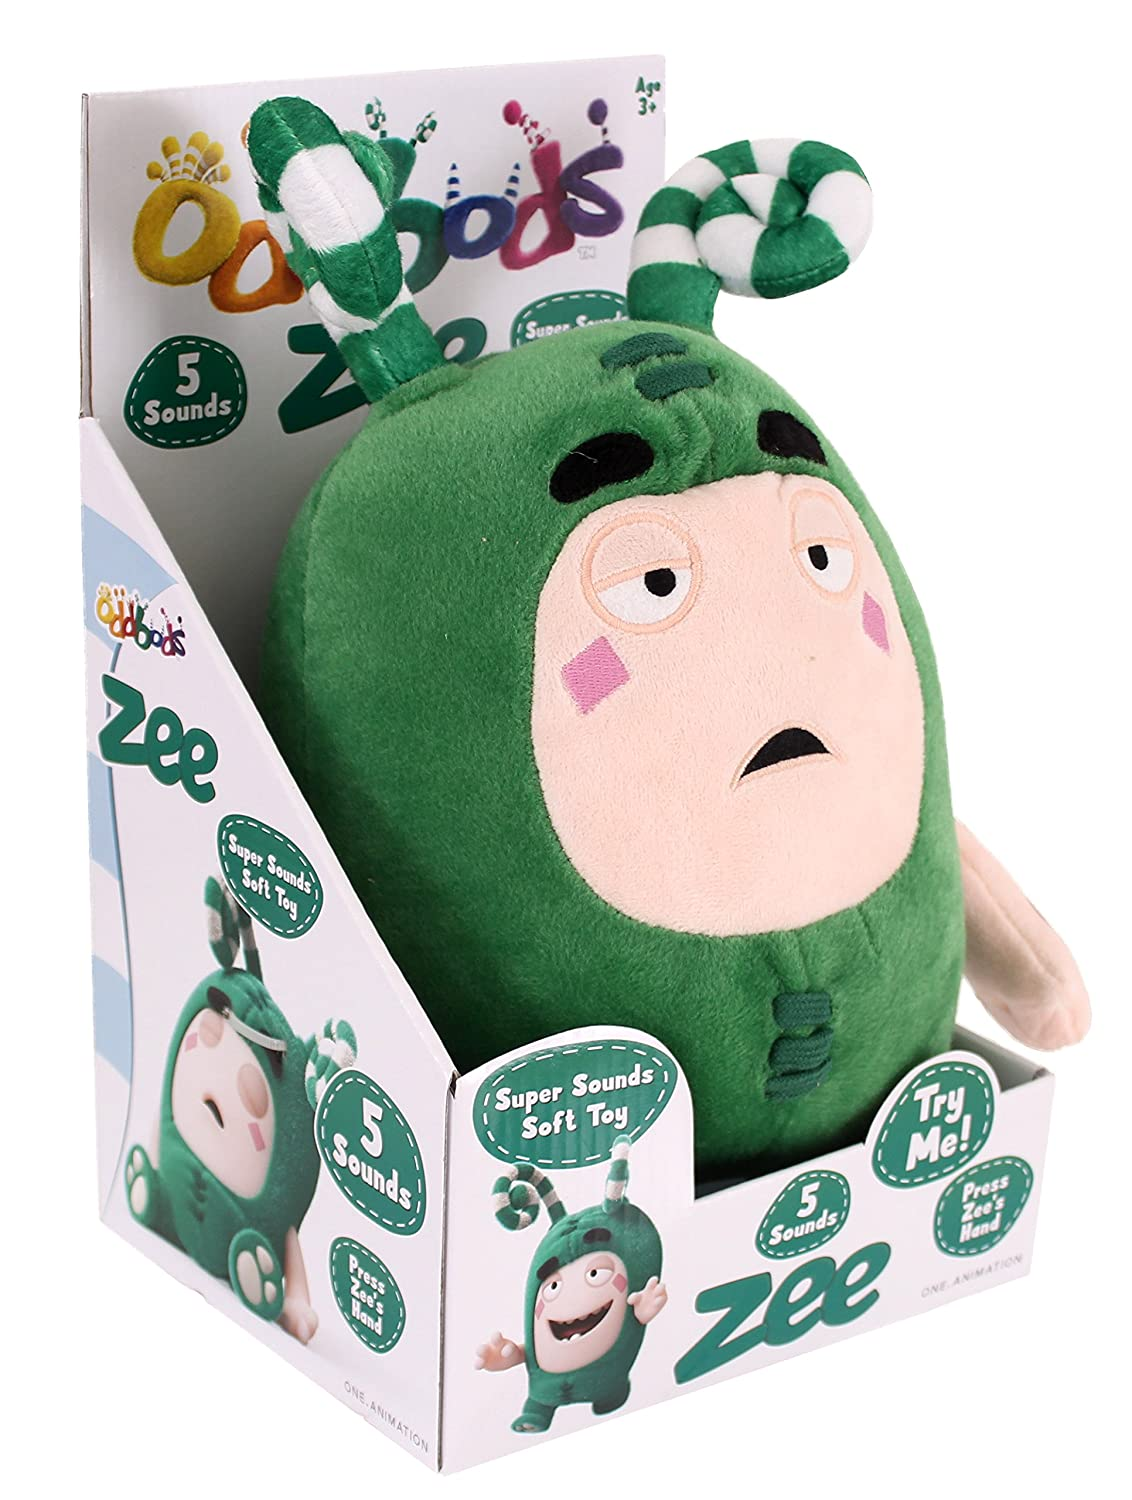 Amazon.com: Golden Bear Oddbods ZEE Super Sounds Soft Toy (Dispatched From UK): Toys & Games